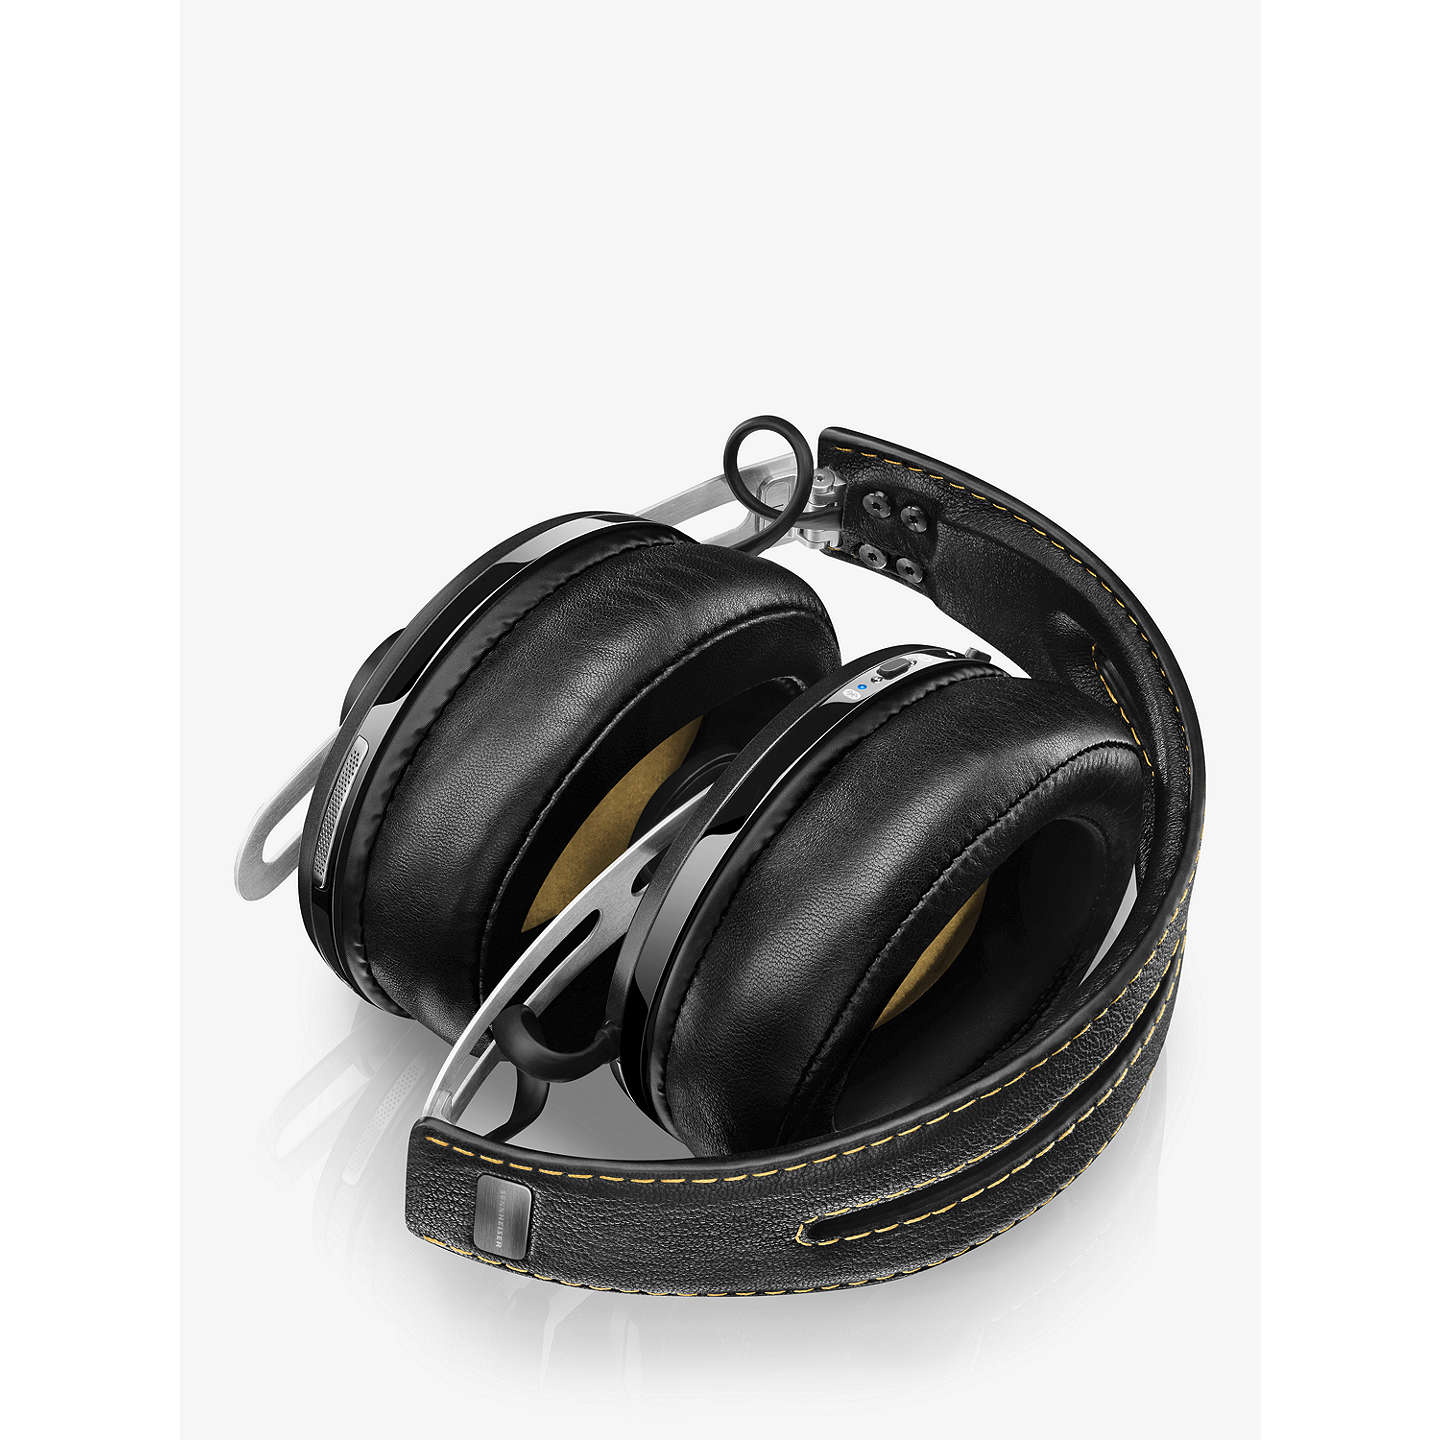 BuySennheiser Momentum 2.0 Wireless Full Size Headphones with In-line Mic/remote, Black Online at johnlewis.com